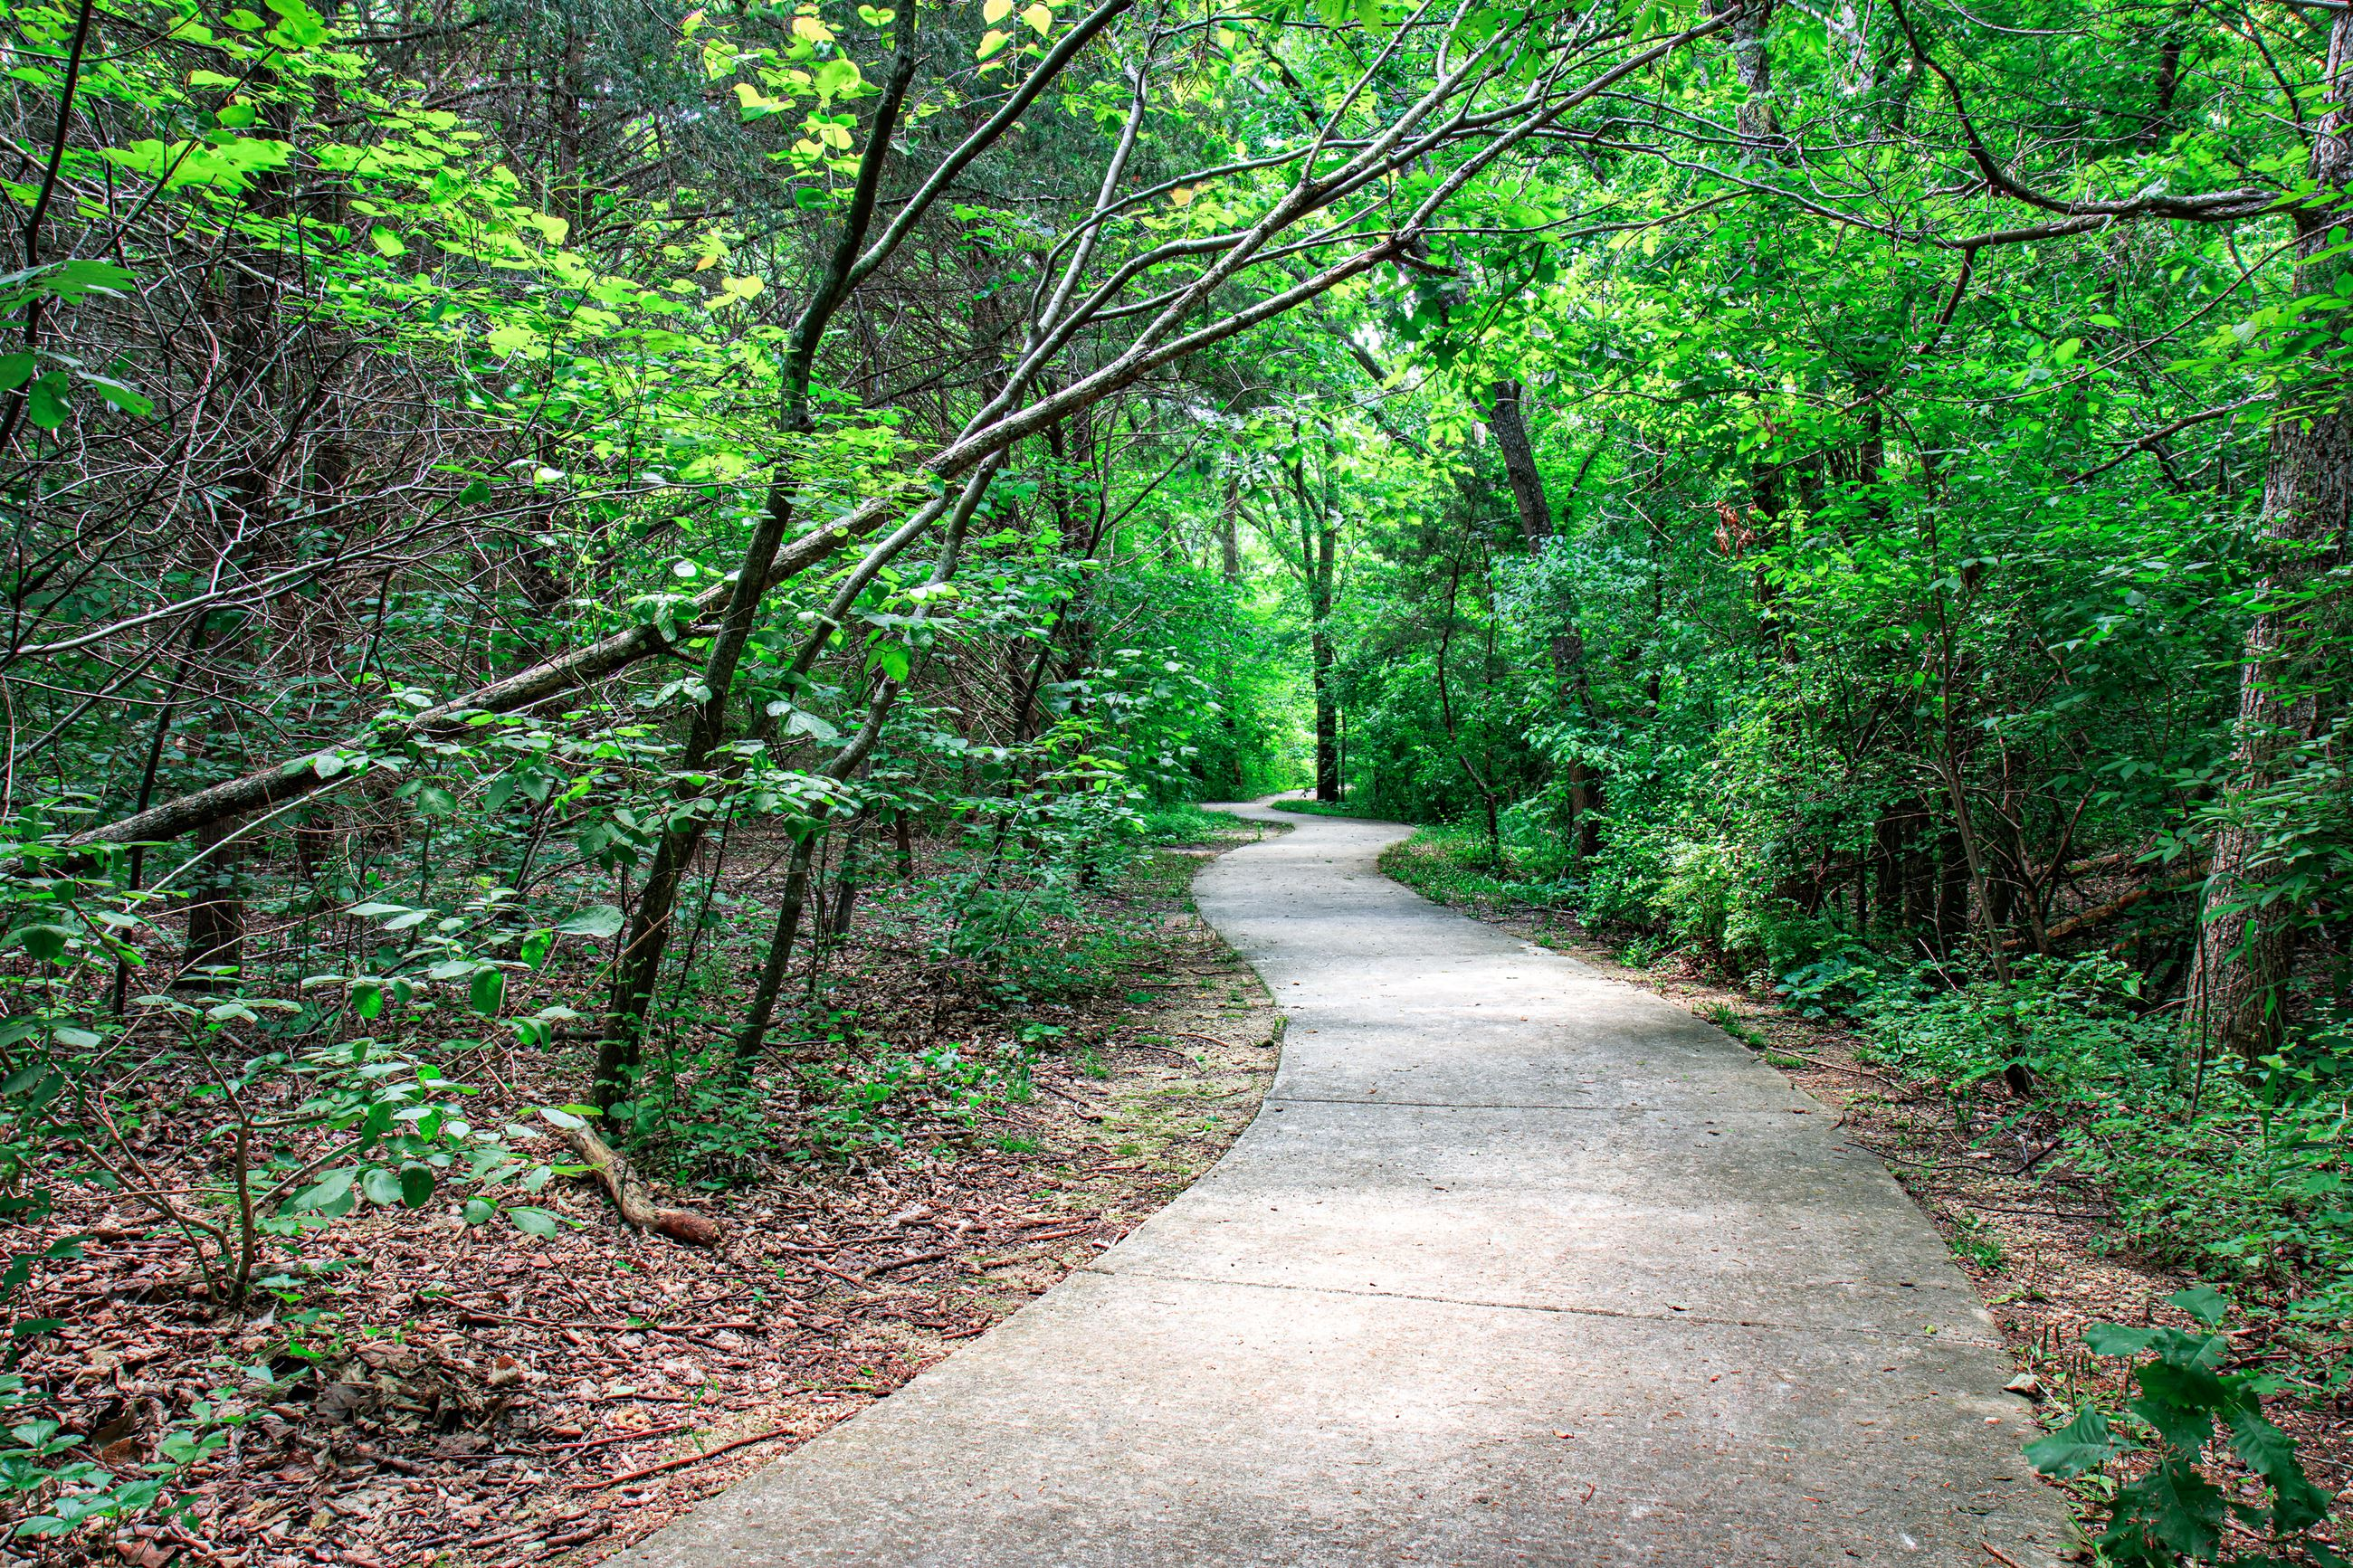 Spring Creek Forest Trail, concrete path, green trees all around.